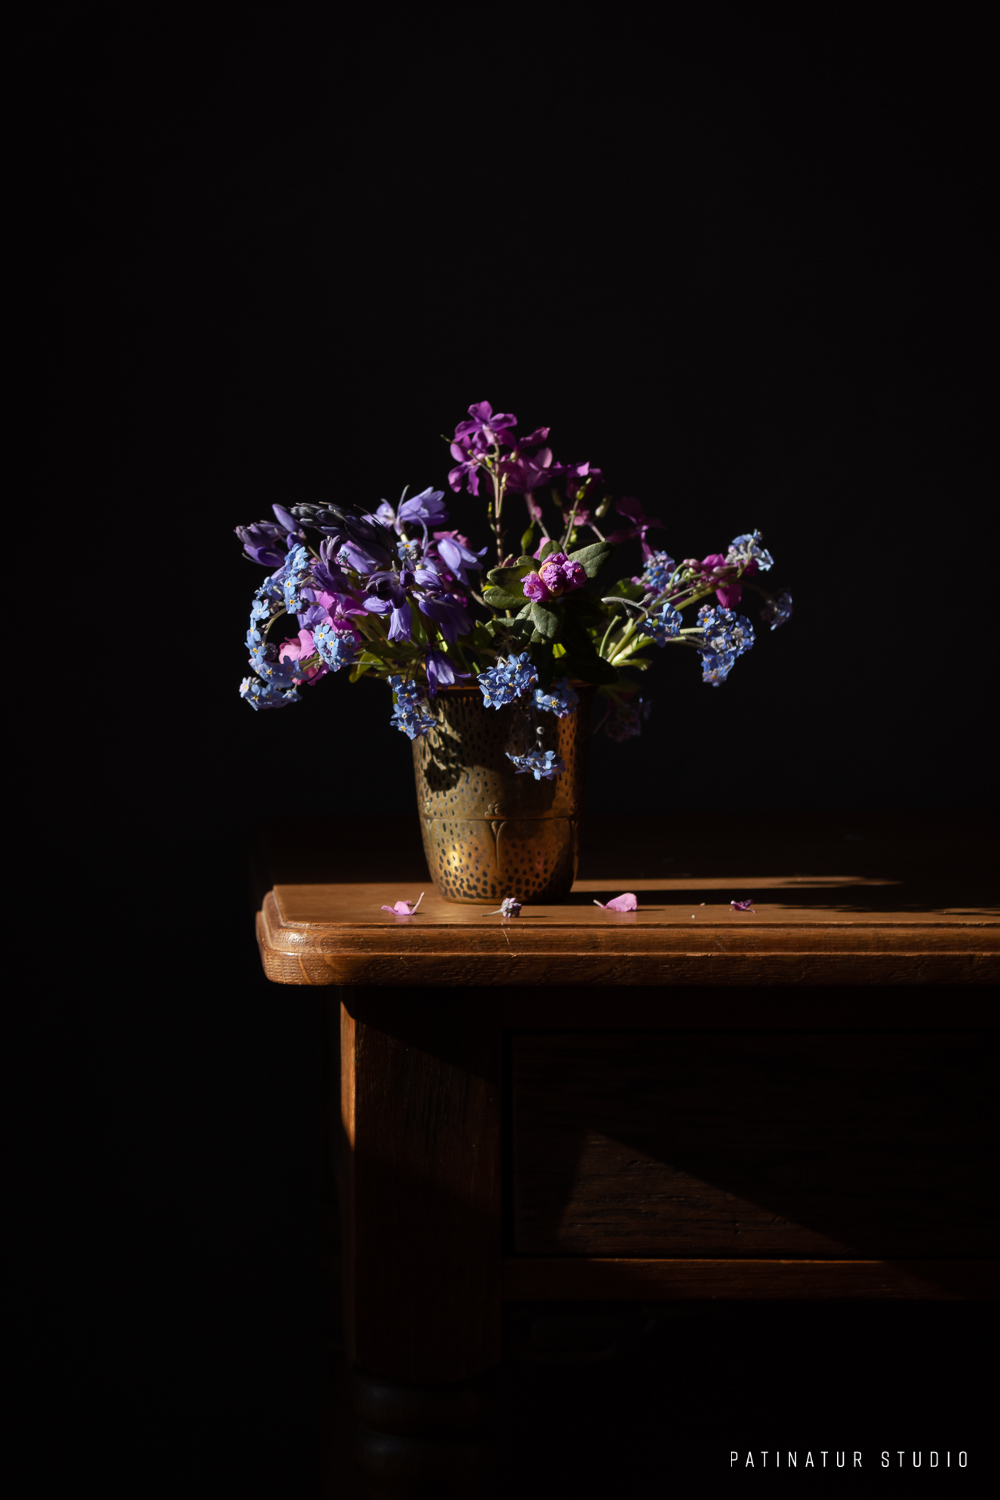 Photo art | Dark and moody floral still life with blue spring bouquet